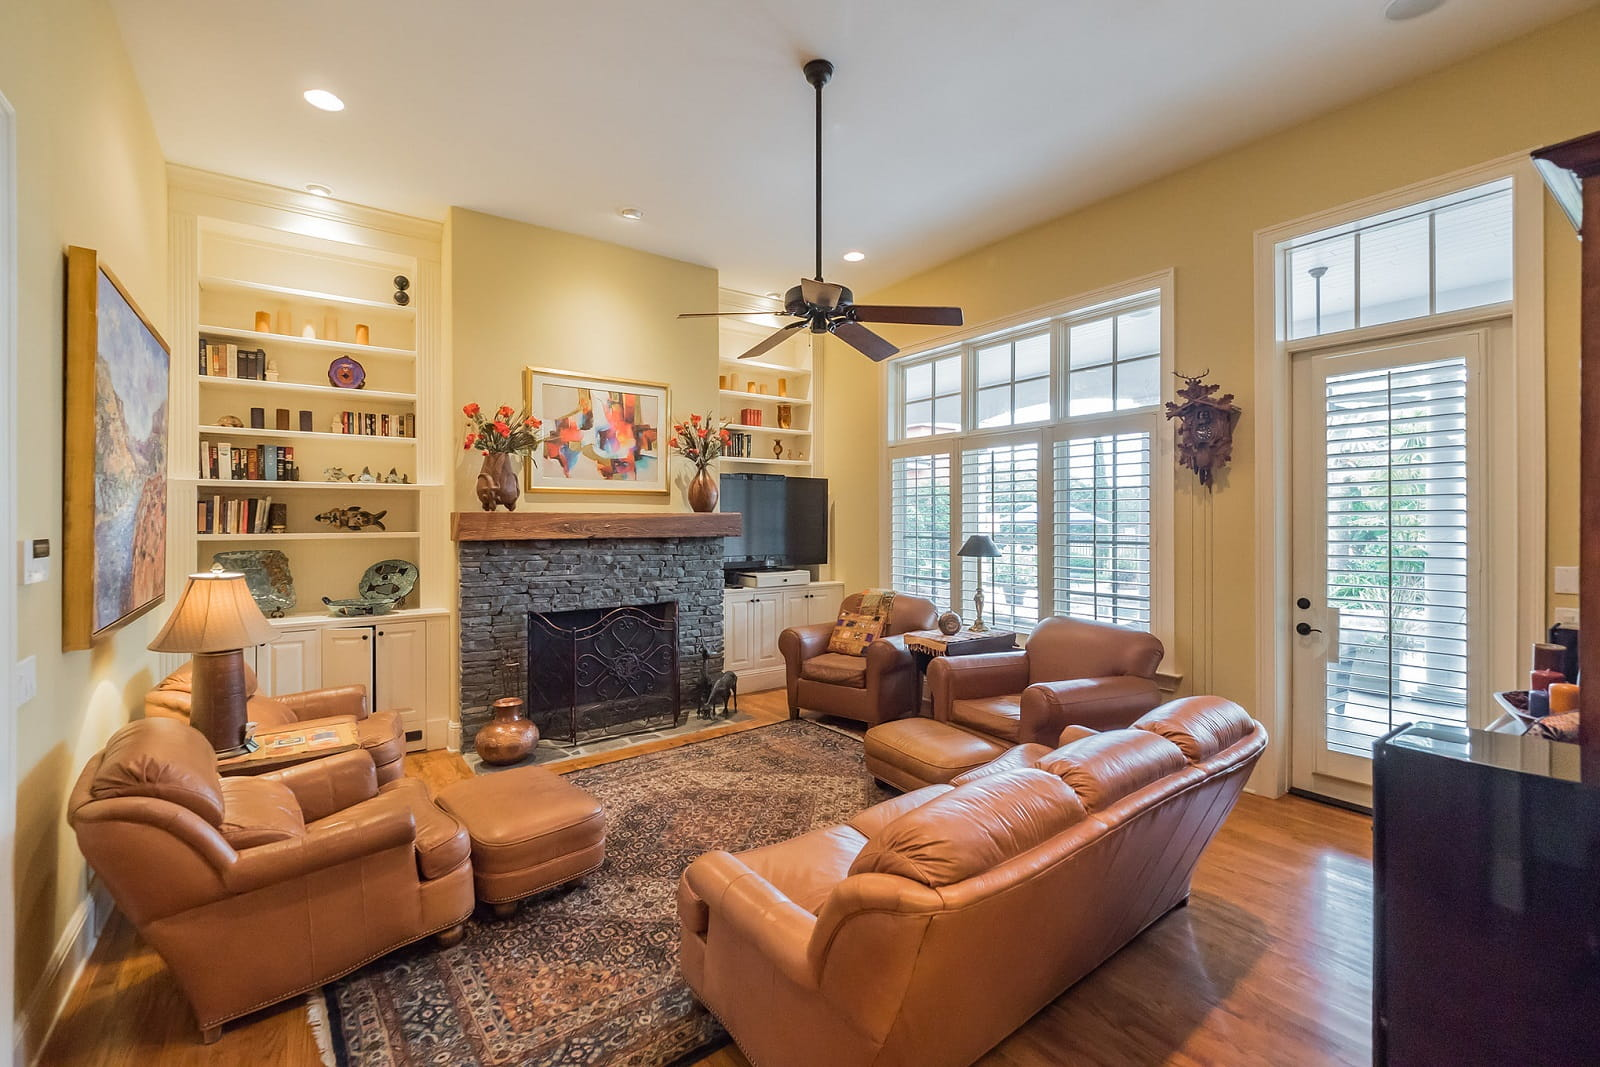 Real Estate Photography in Sanford - FL - USA - Living Area View